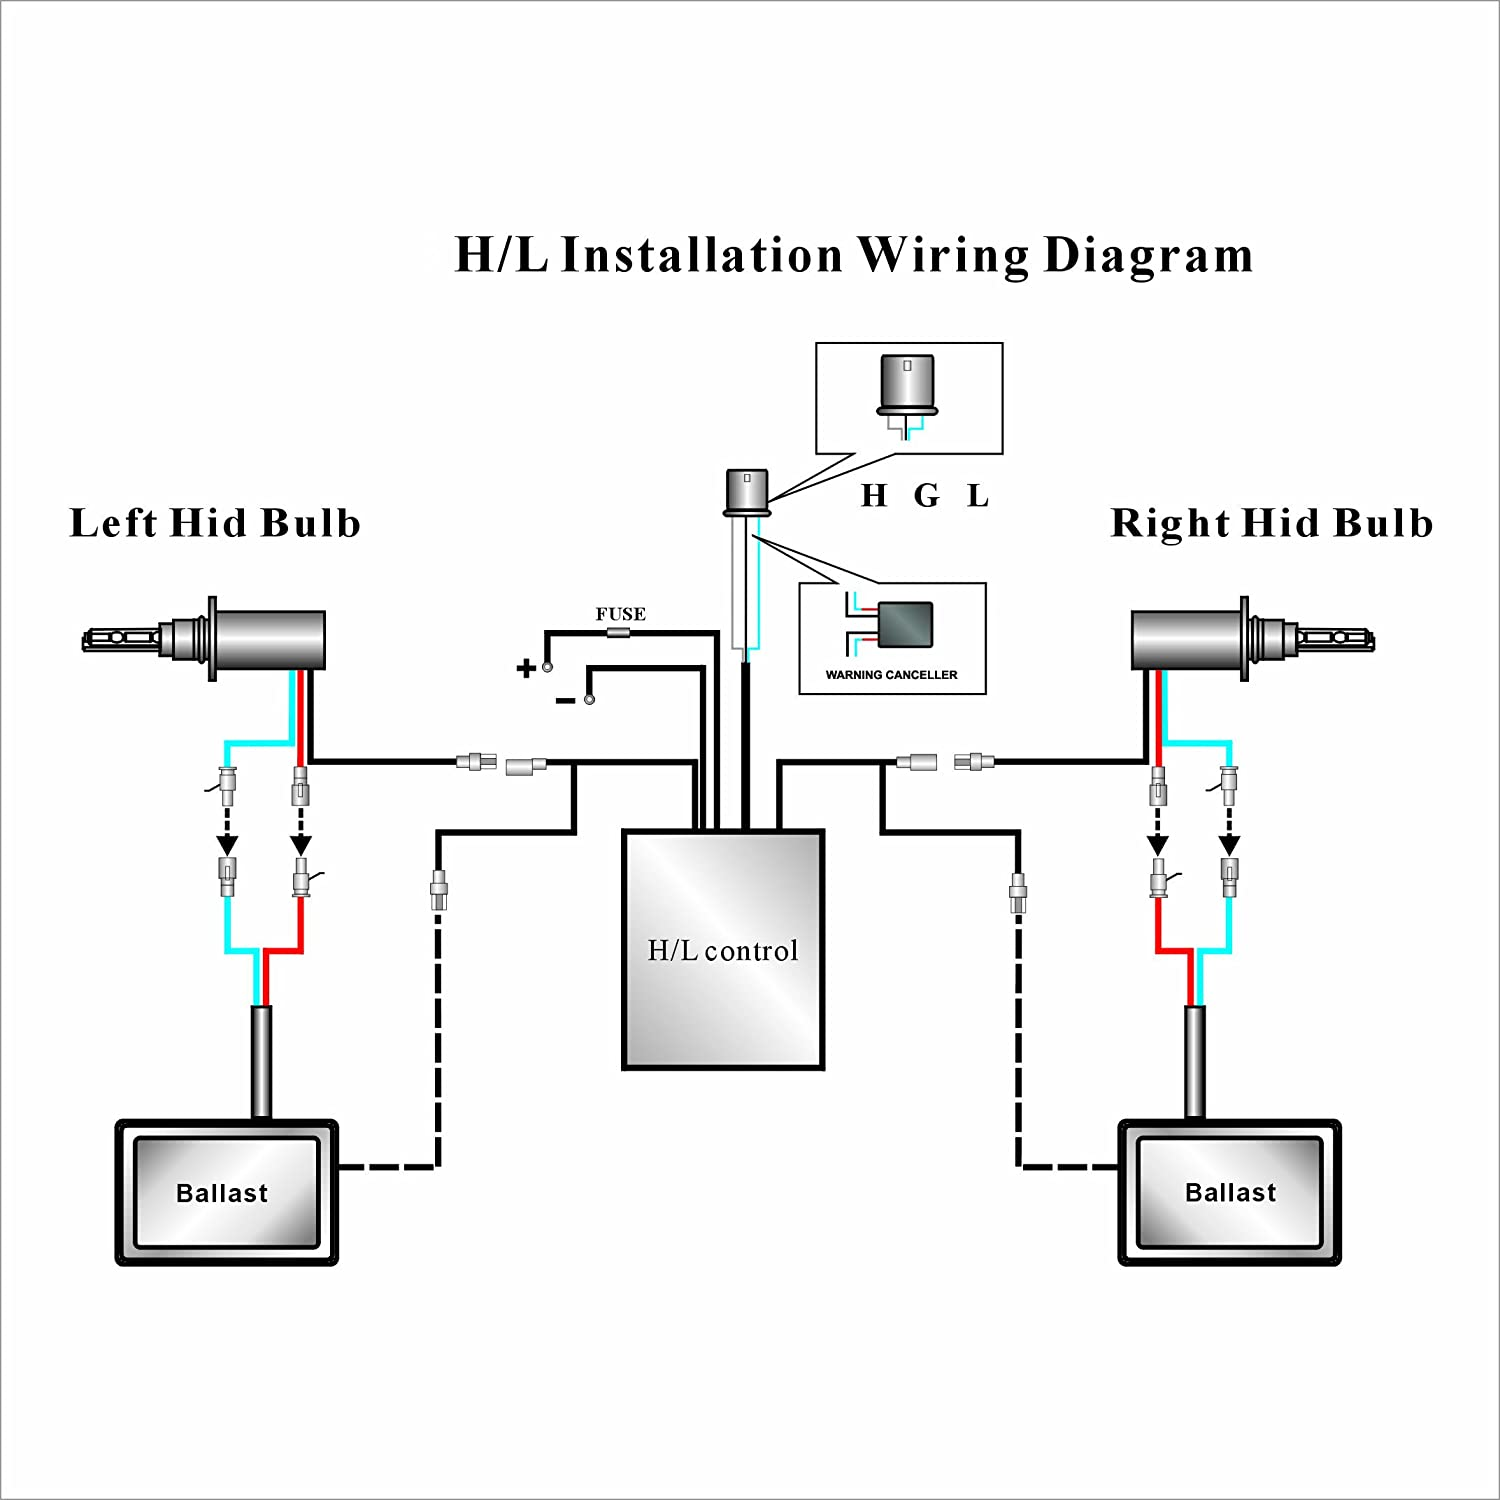 Hi Lo Wiring Diagram 20 Images Diagrams H4 Hid Headlight 4 Free Download Sl1500 U2022